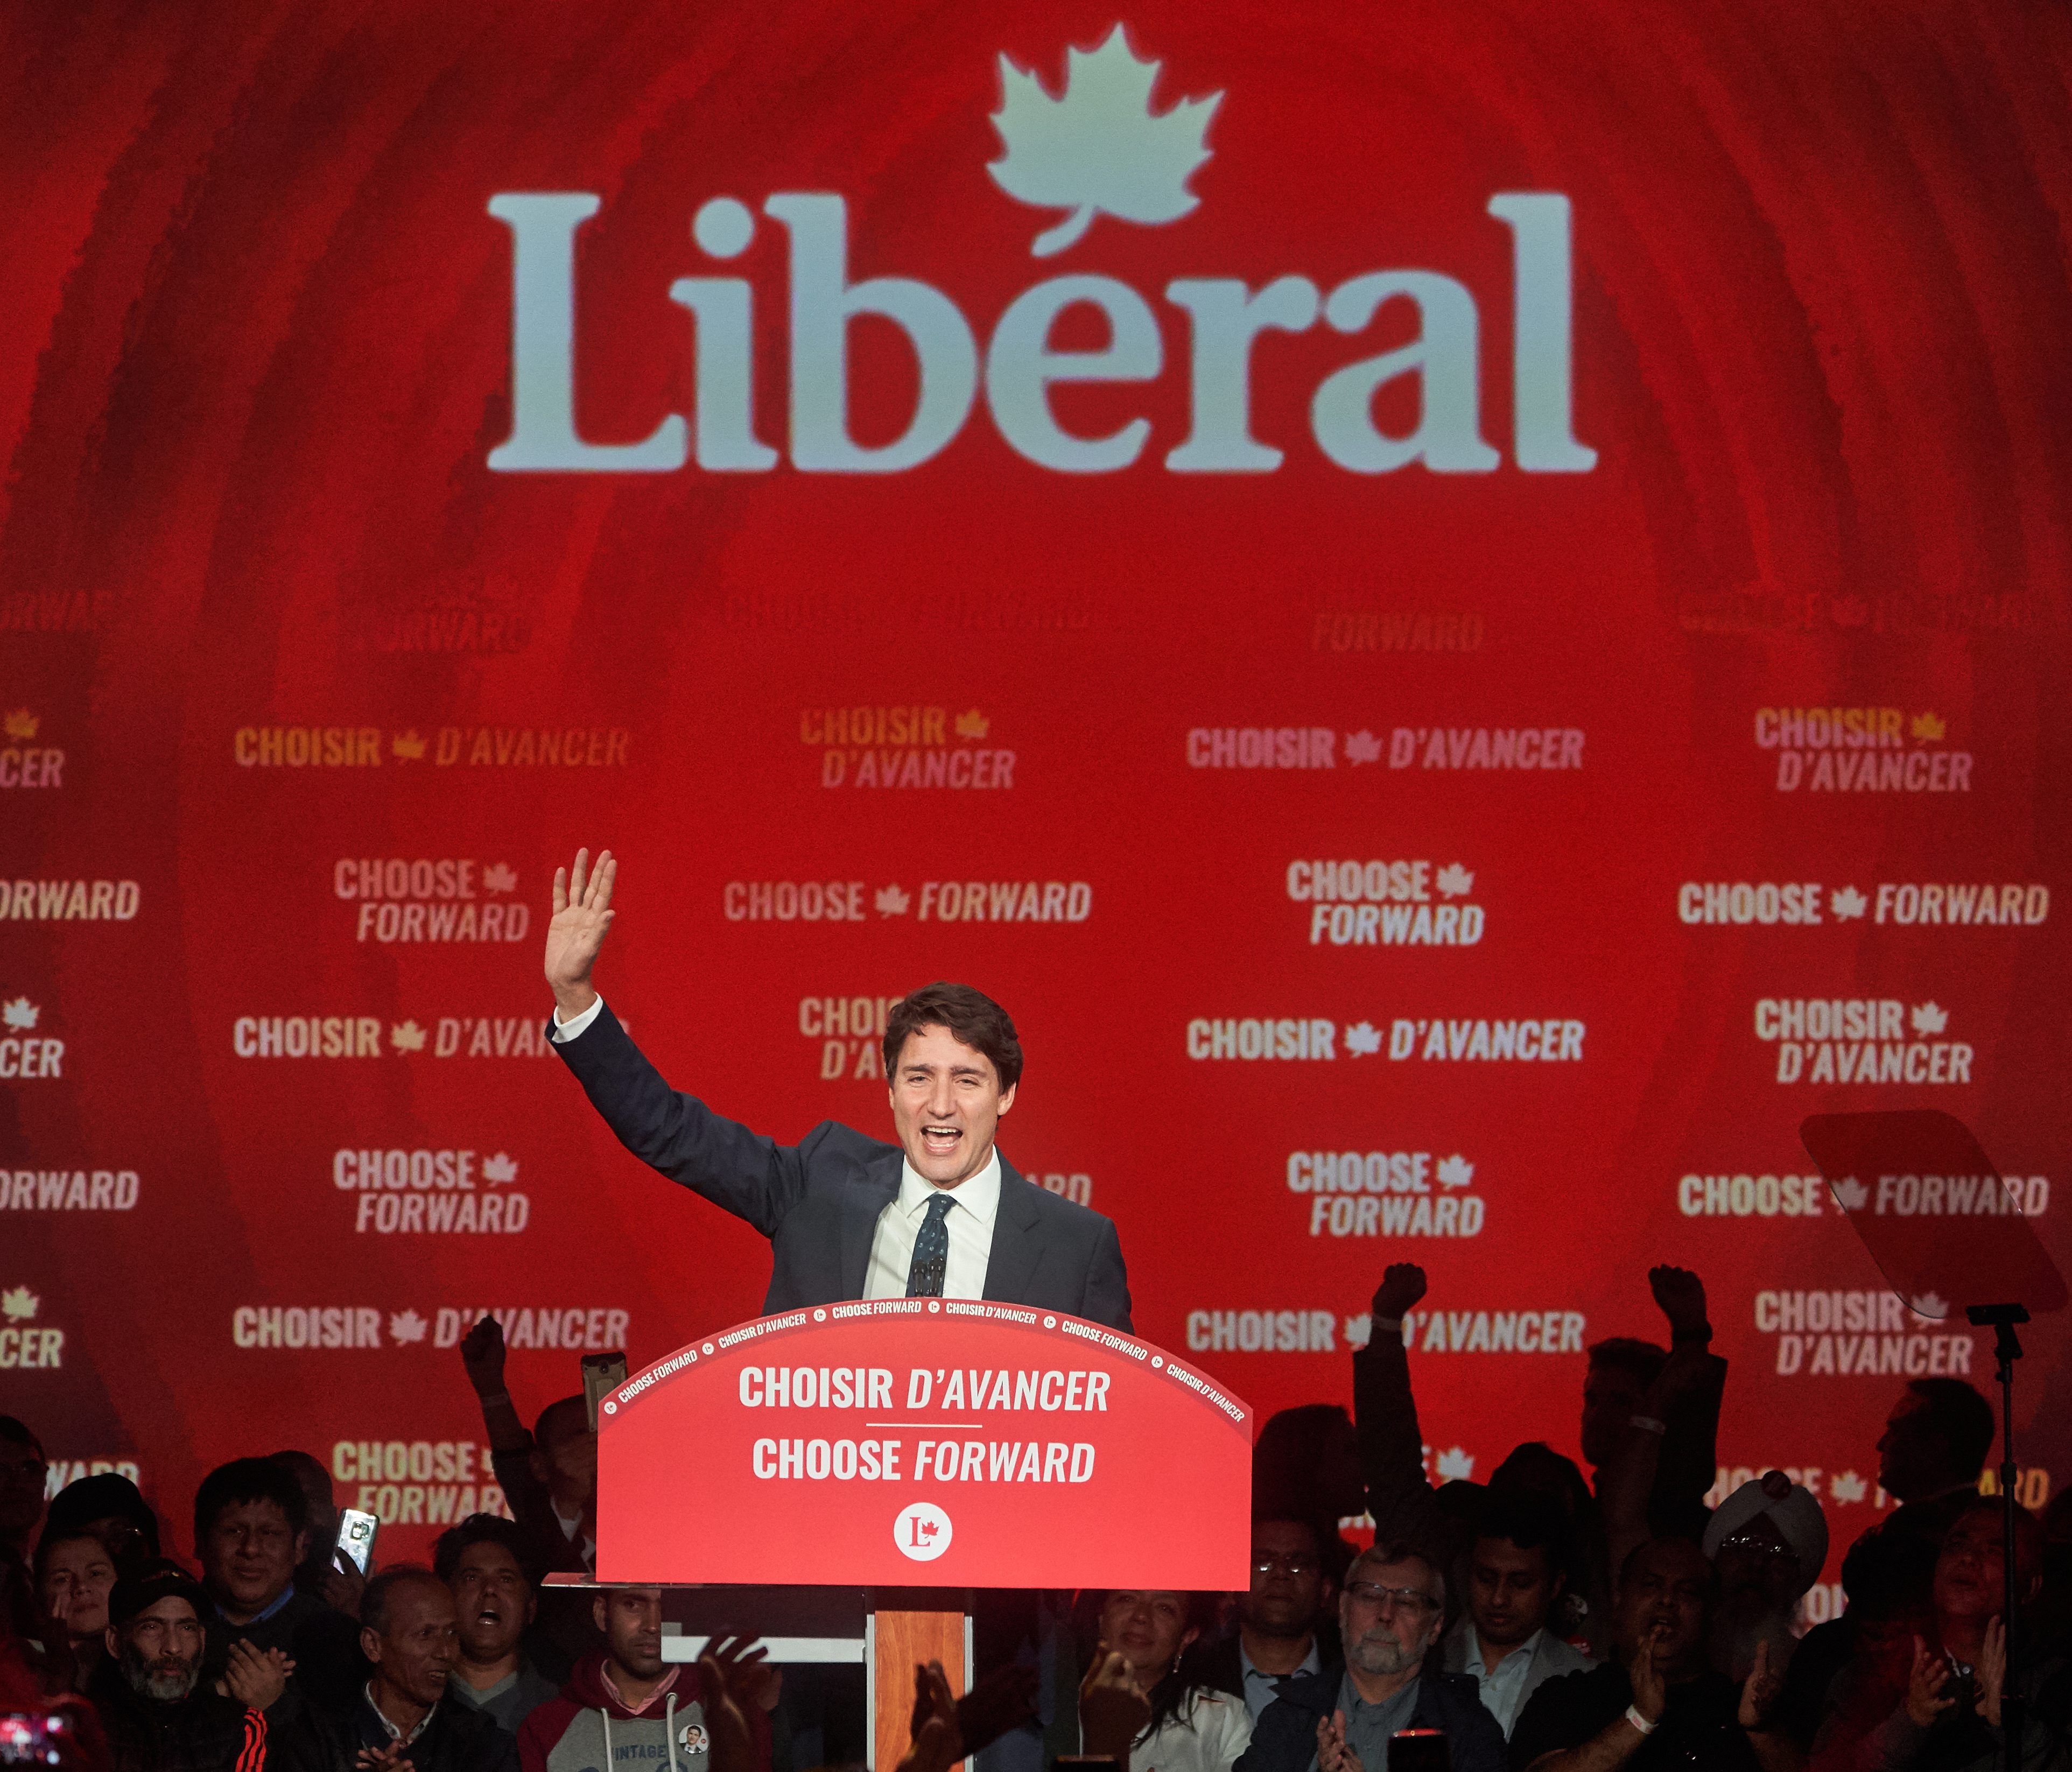 Is national unity under fire following the 2019 federal election?